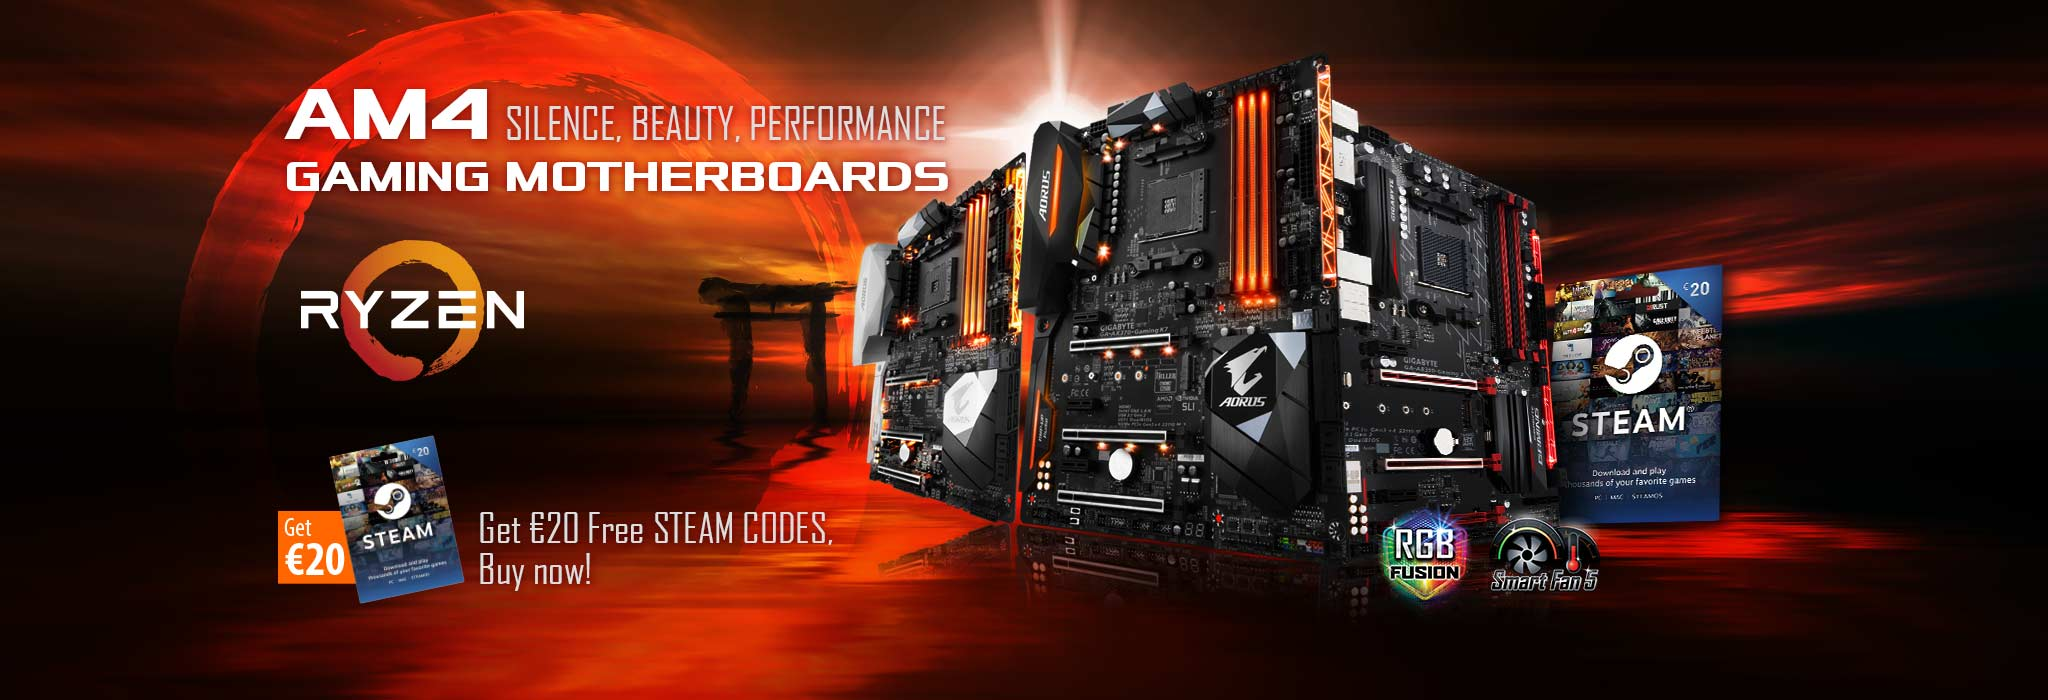 AORUS Gaming Motherboards Come with Fun- up to €60 Free Steam Codes